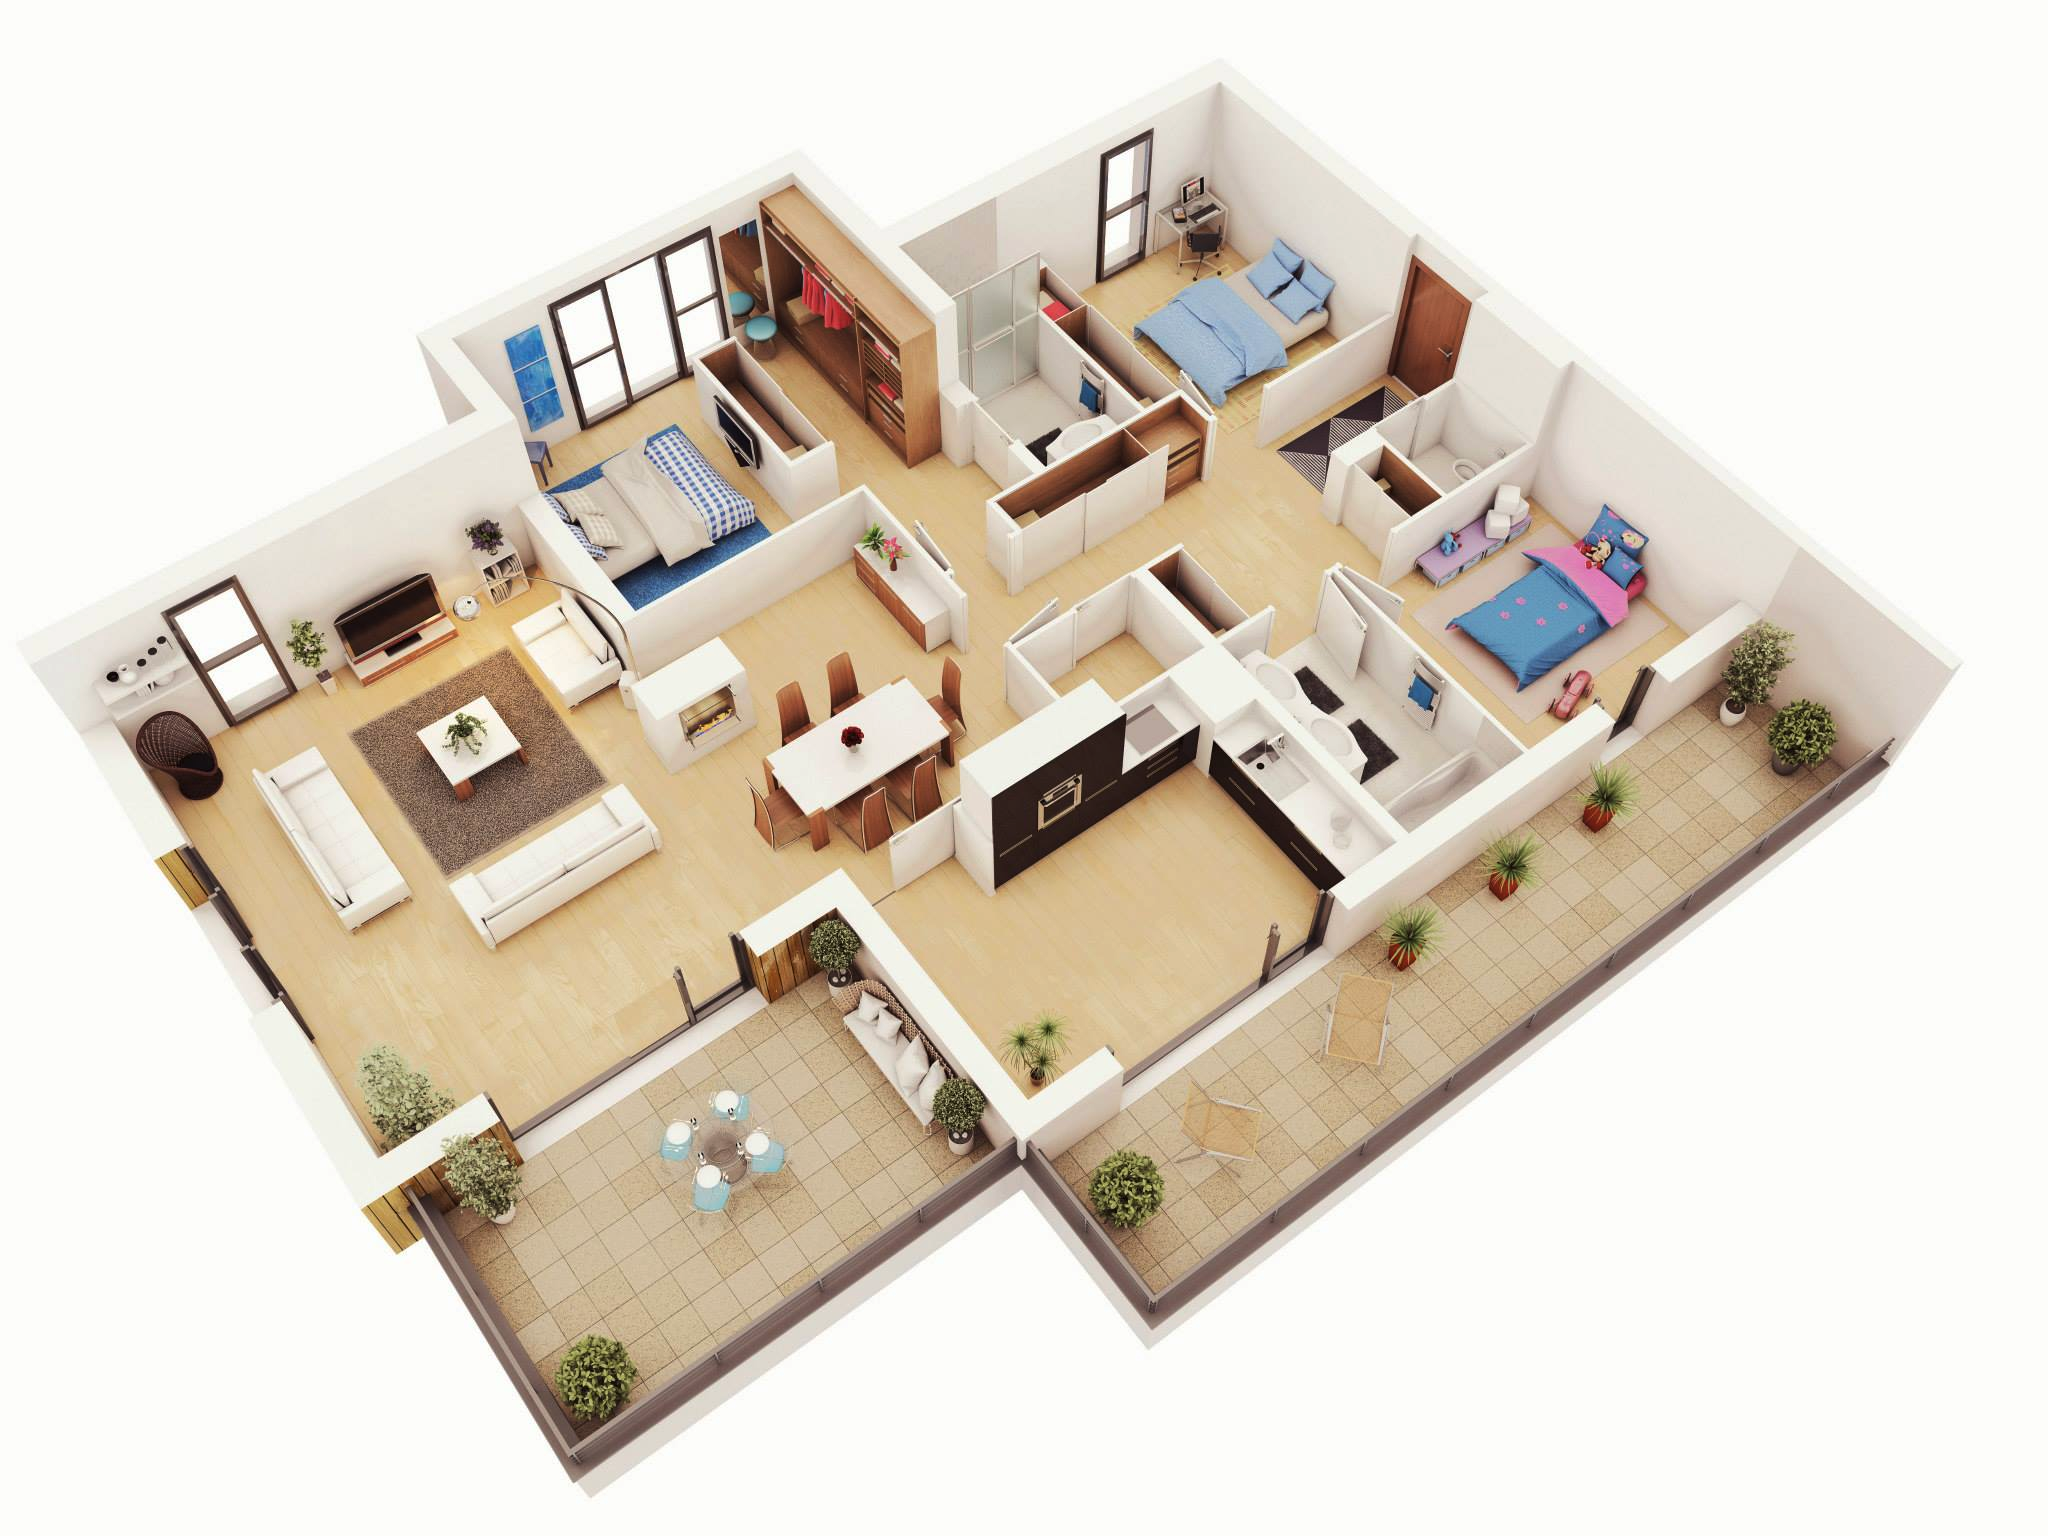 25 more 3 bedroom 3d floor plans architecture design for 3 bedroom house interior design